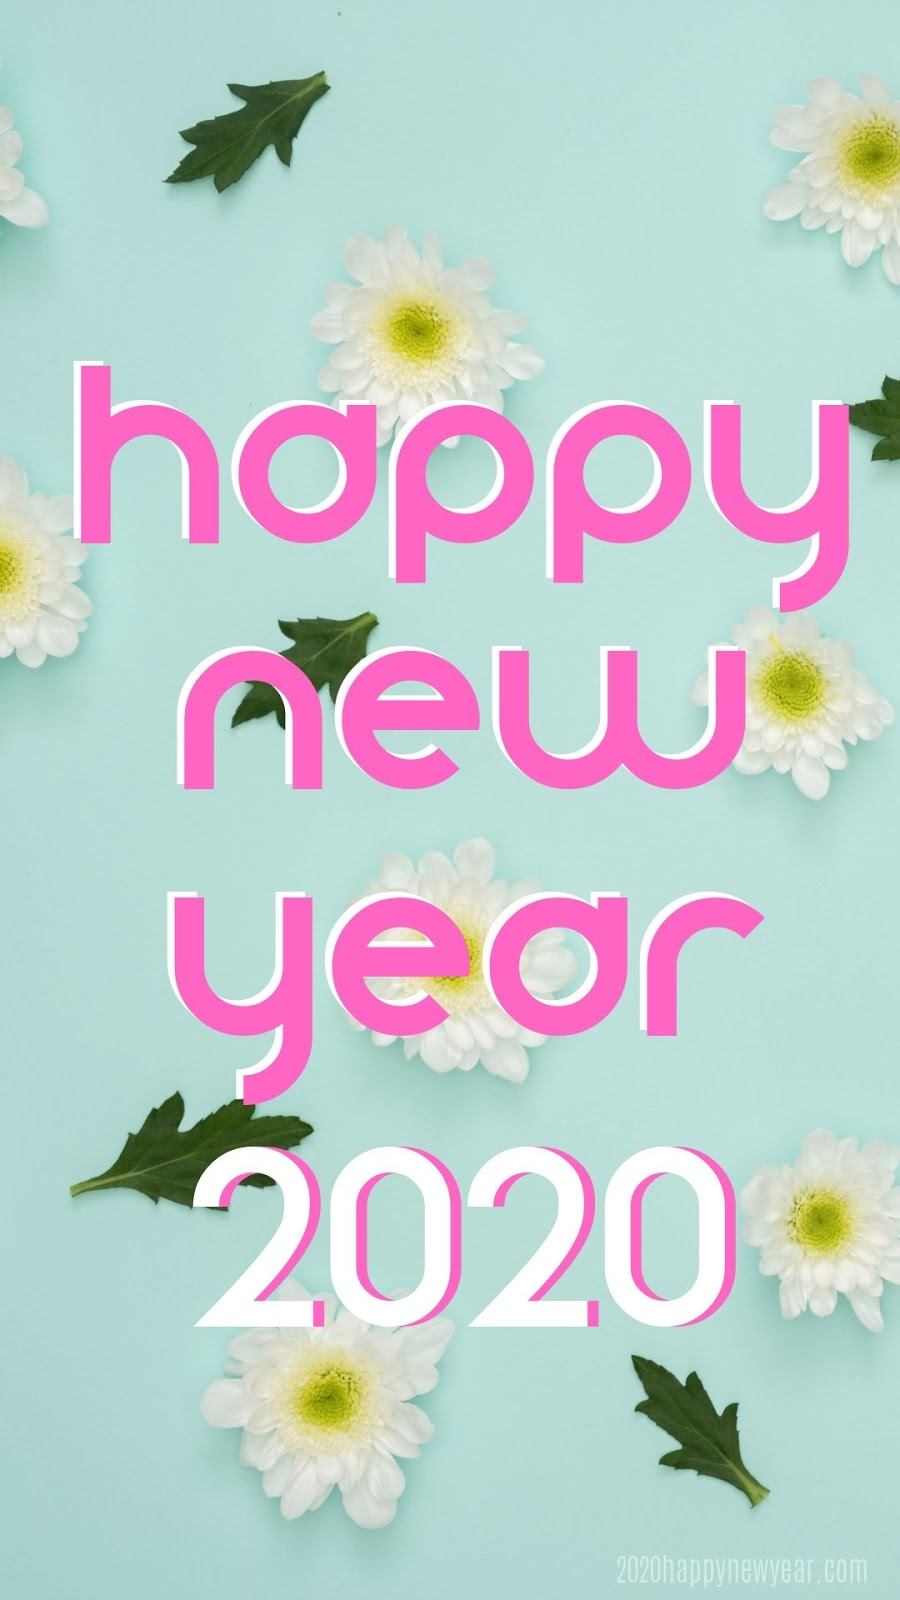 Happy New Year 2020 WhatsApp Status Images for Free